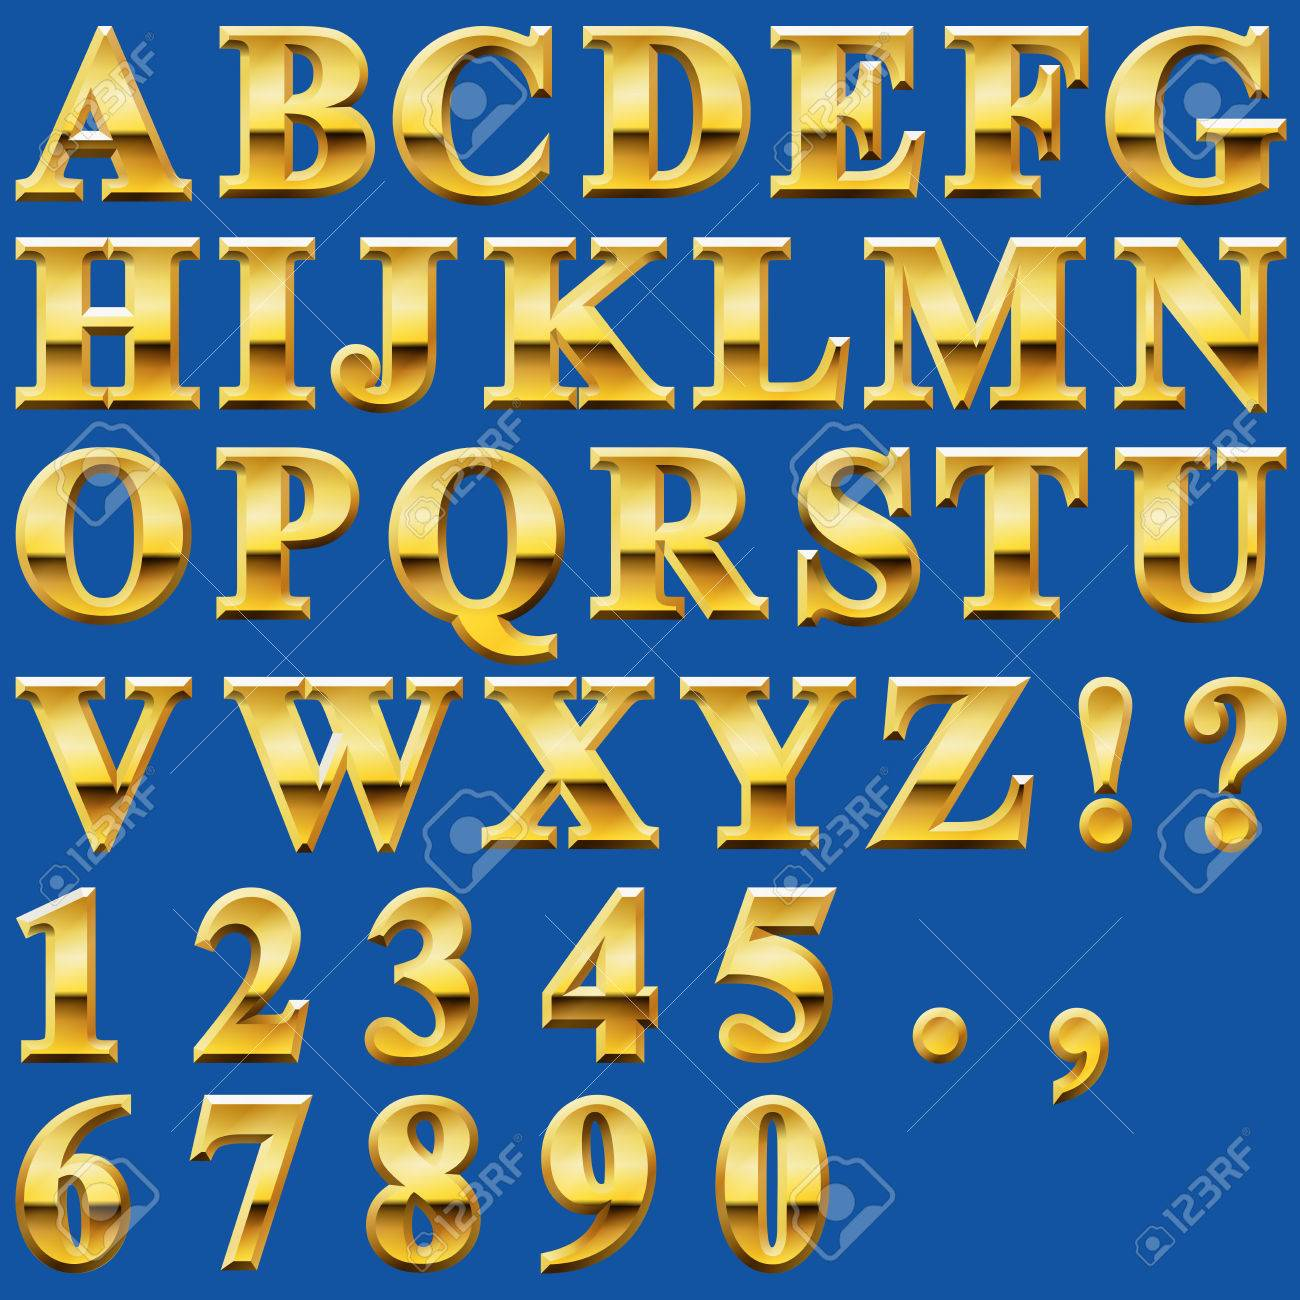 Metal Letters And Numbers Stunning An Alphabet Sit Of Shiny Gold Metal Letters And Numbers Royalty Design Decoration